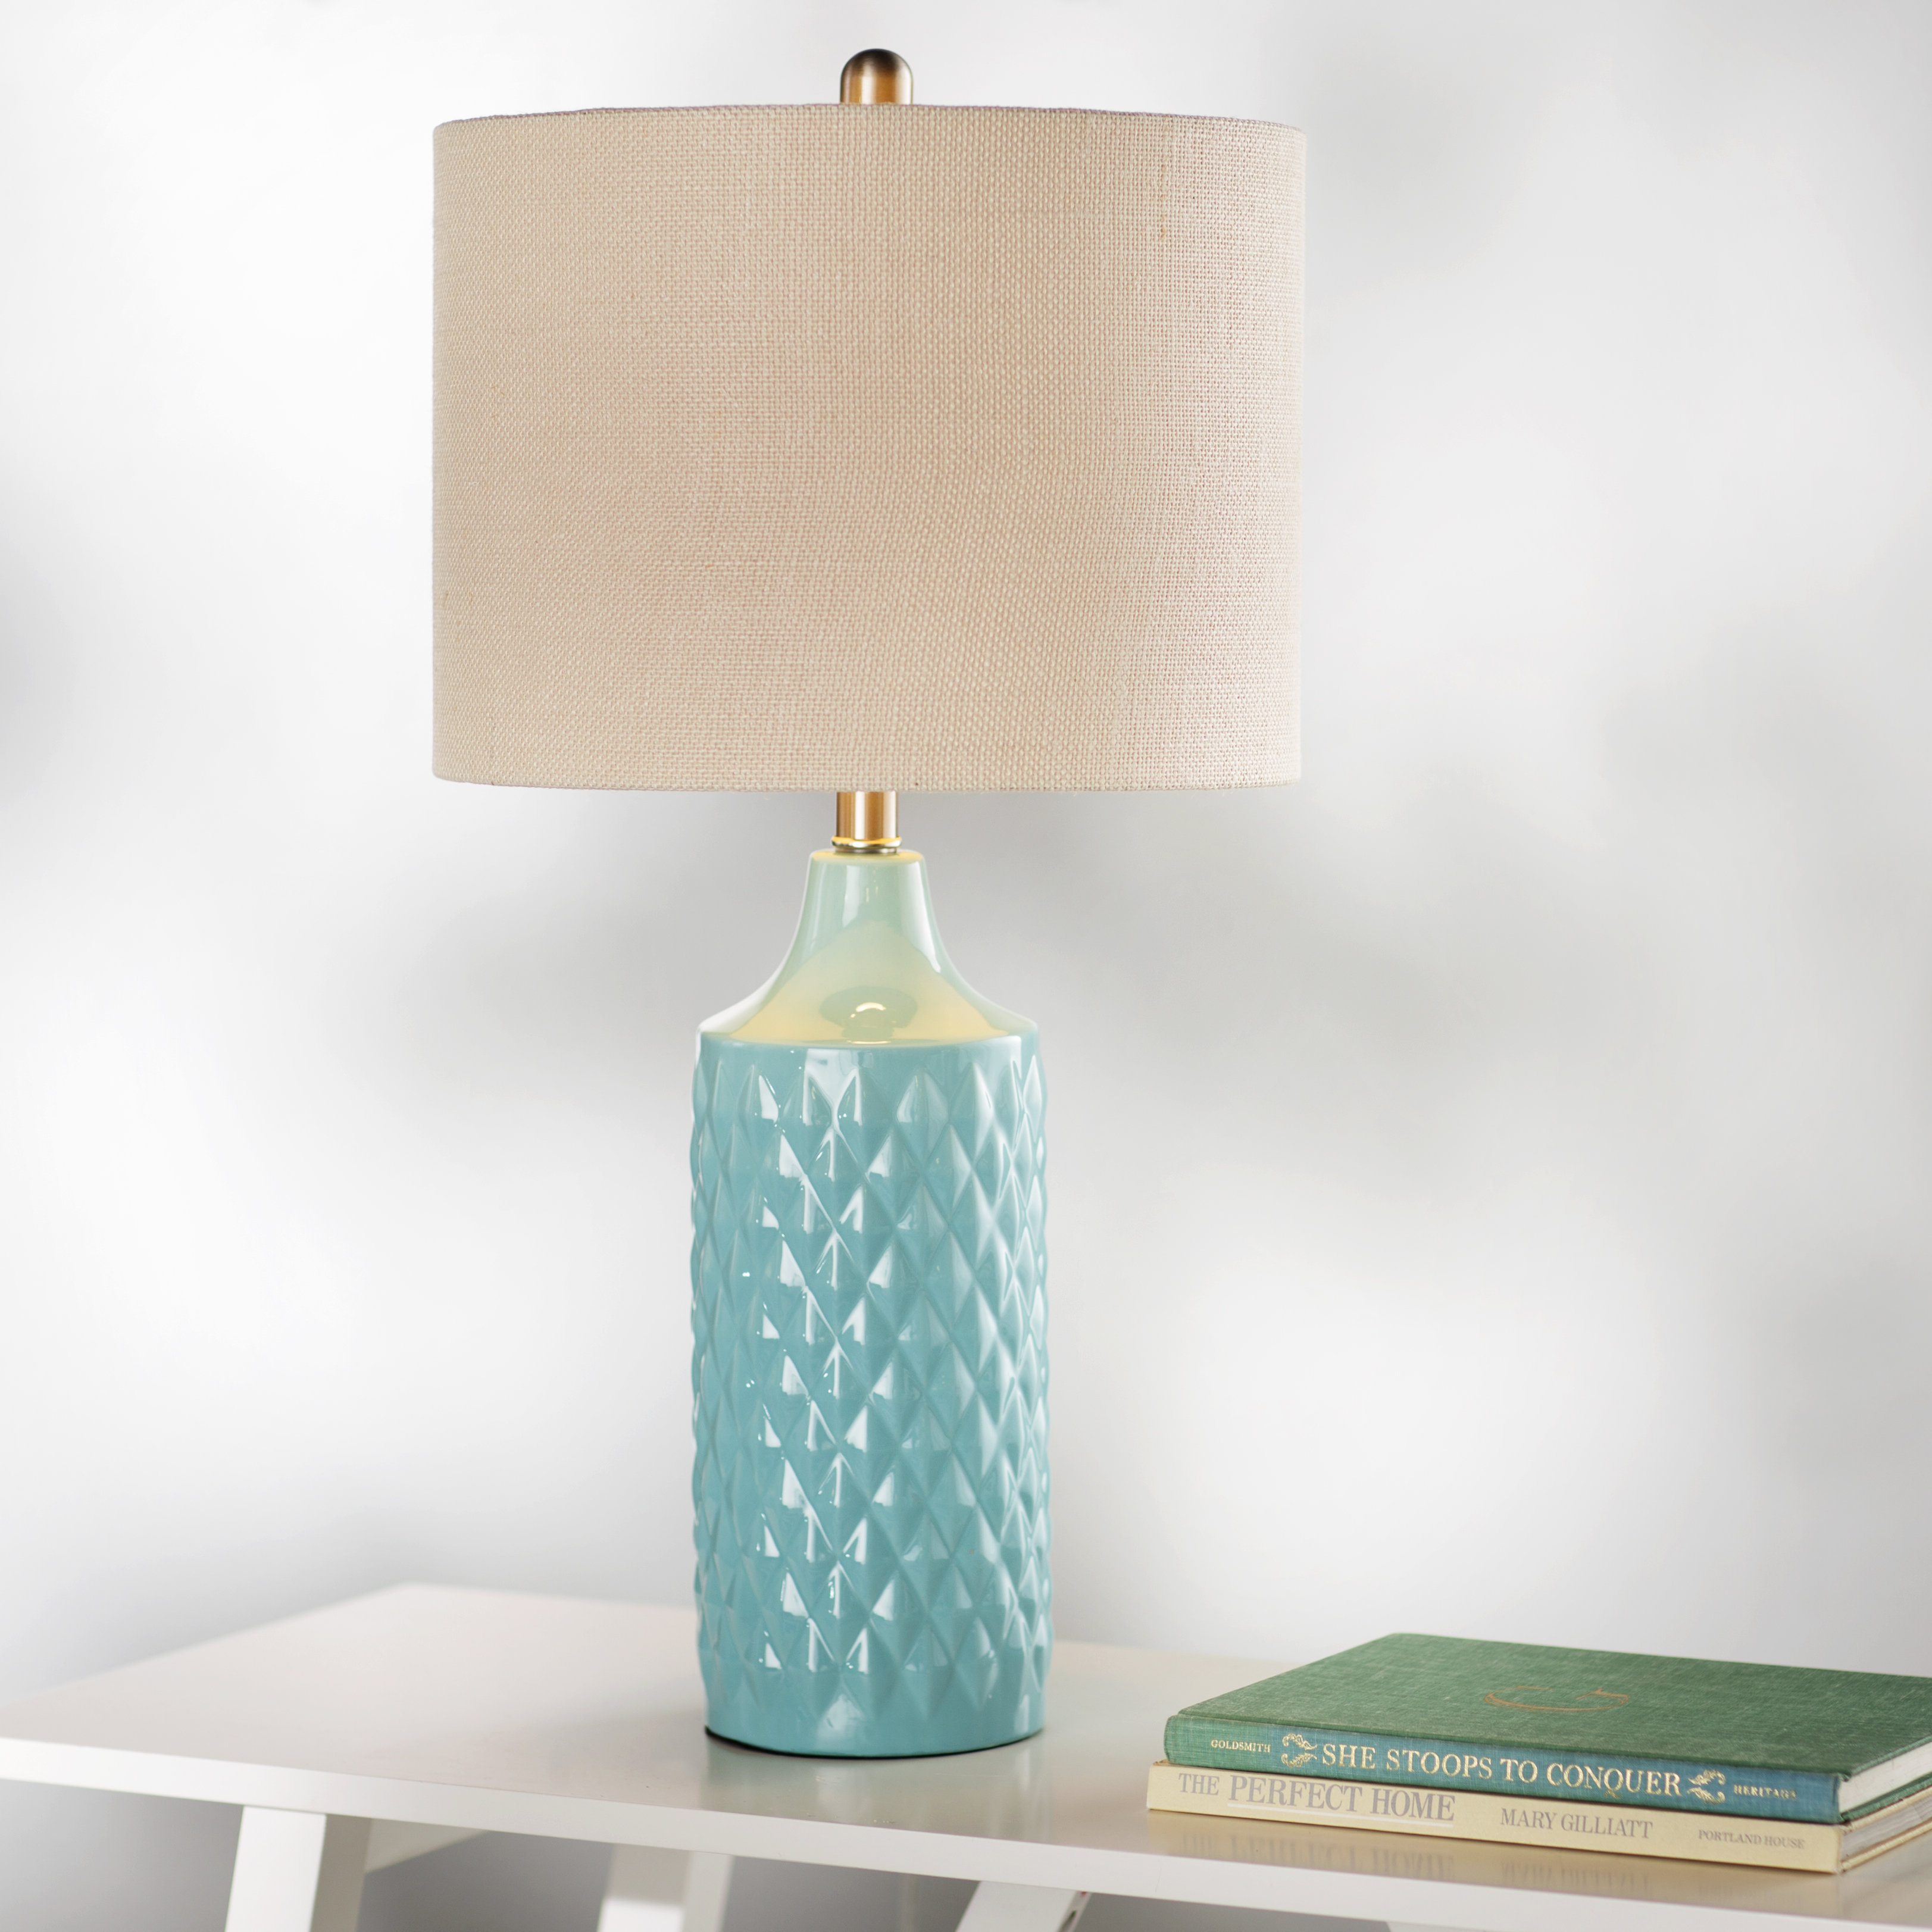 beachcrest home melbourne beach table lamp reviews accent lighting seattle mirrored with drawers farm style sofa kmart camping pub garden furniture black pedestal threshold gold